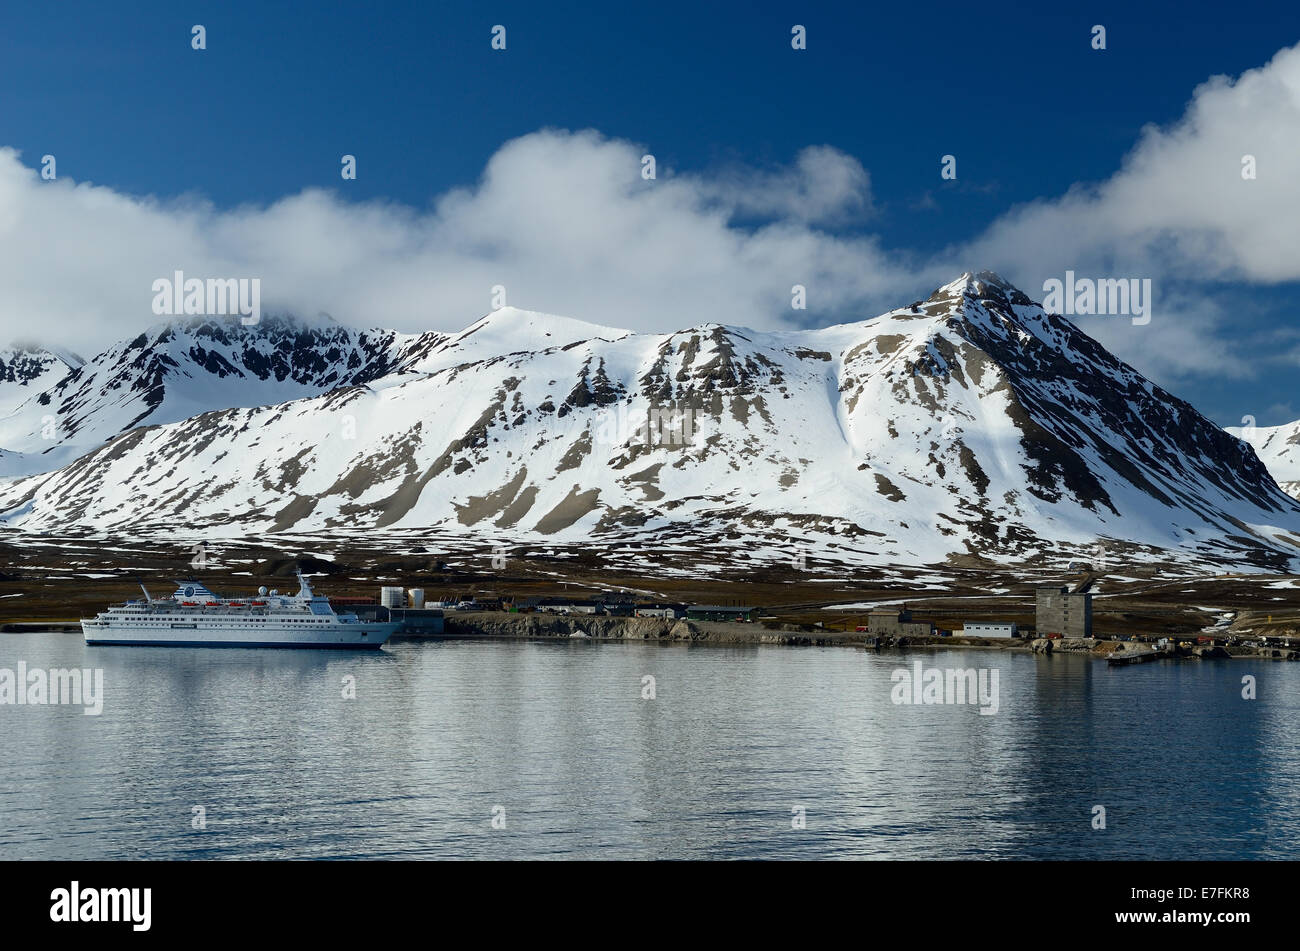 MS Delphin moored in Kongsfjord (Kings Bay) at Ny Alesund, the world's most northerly settlement. - Stock Image